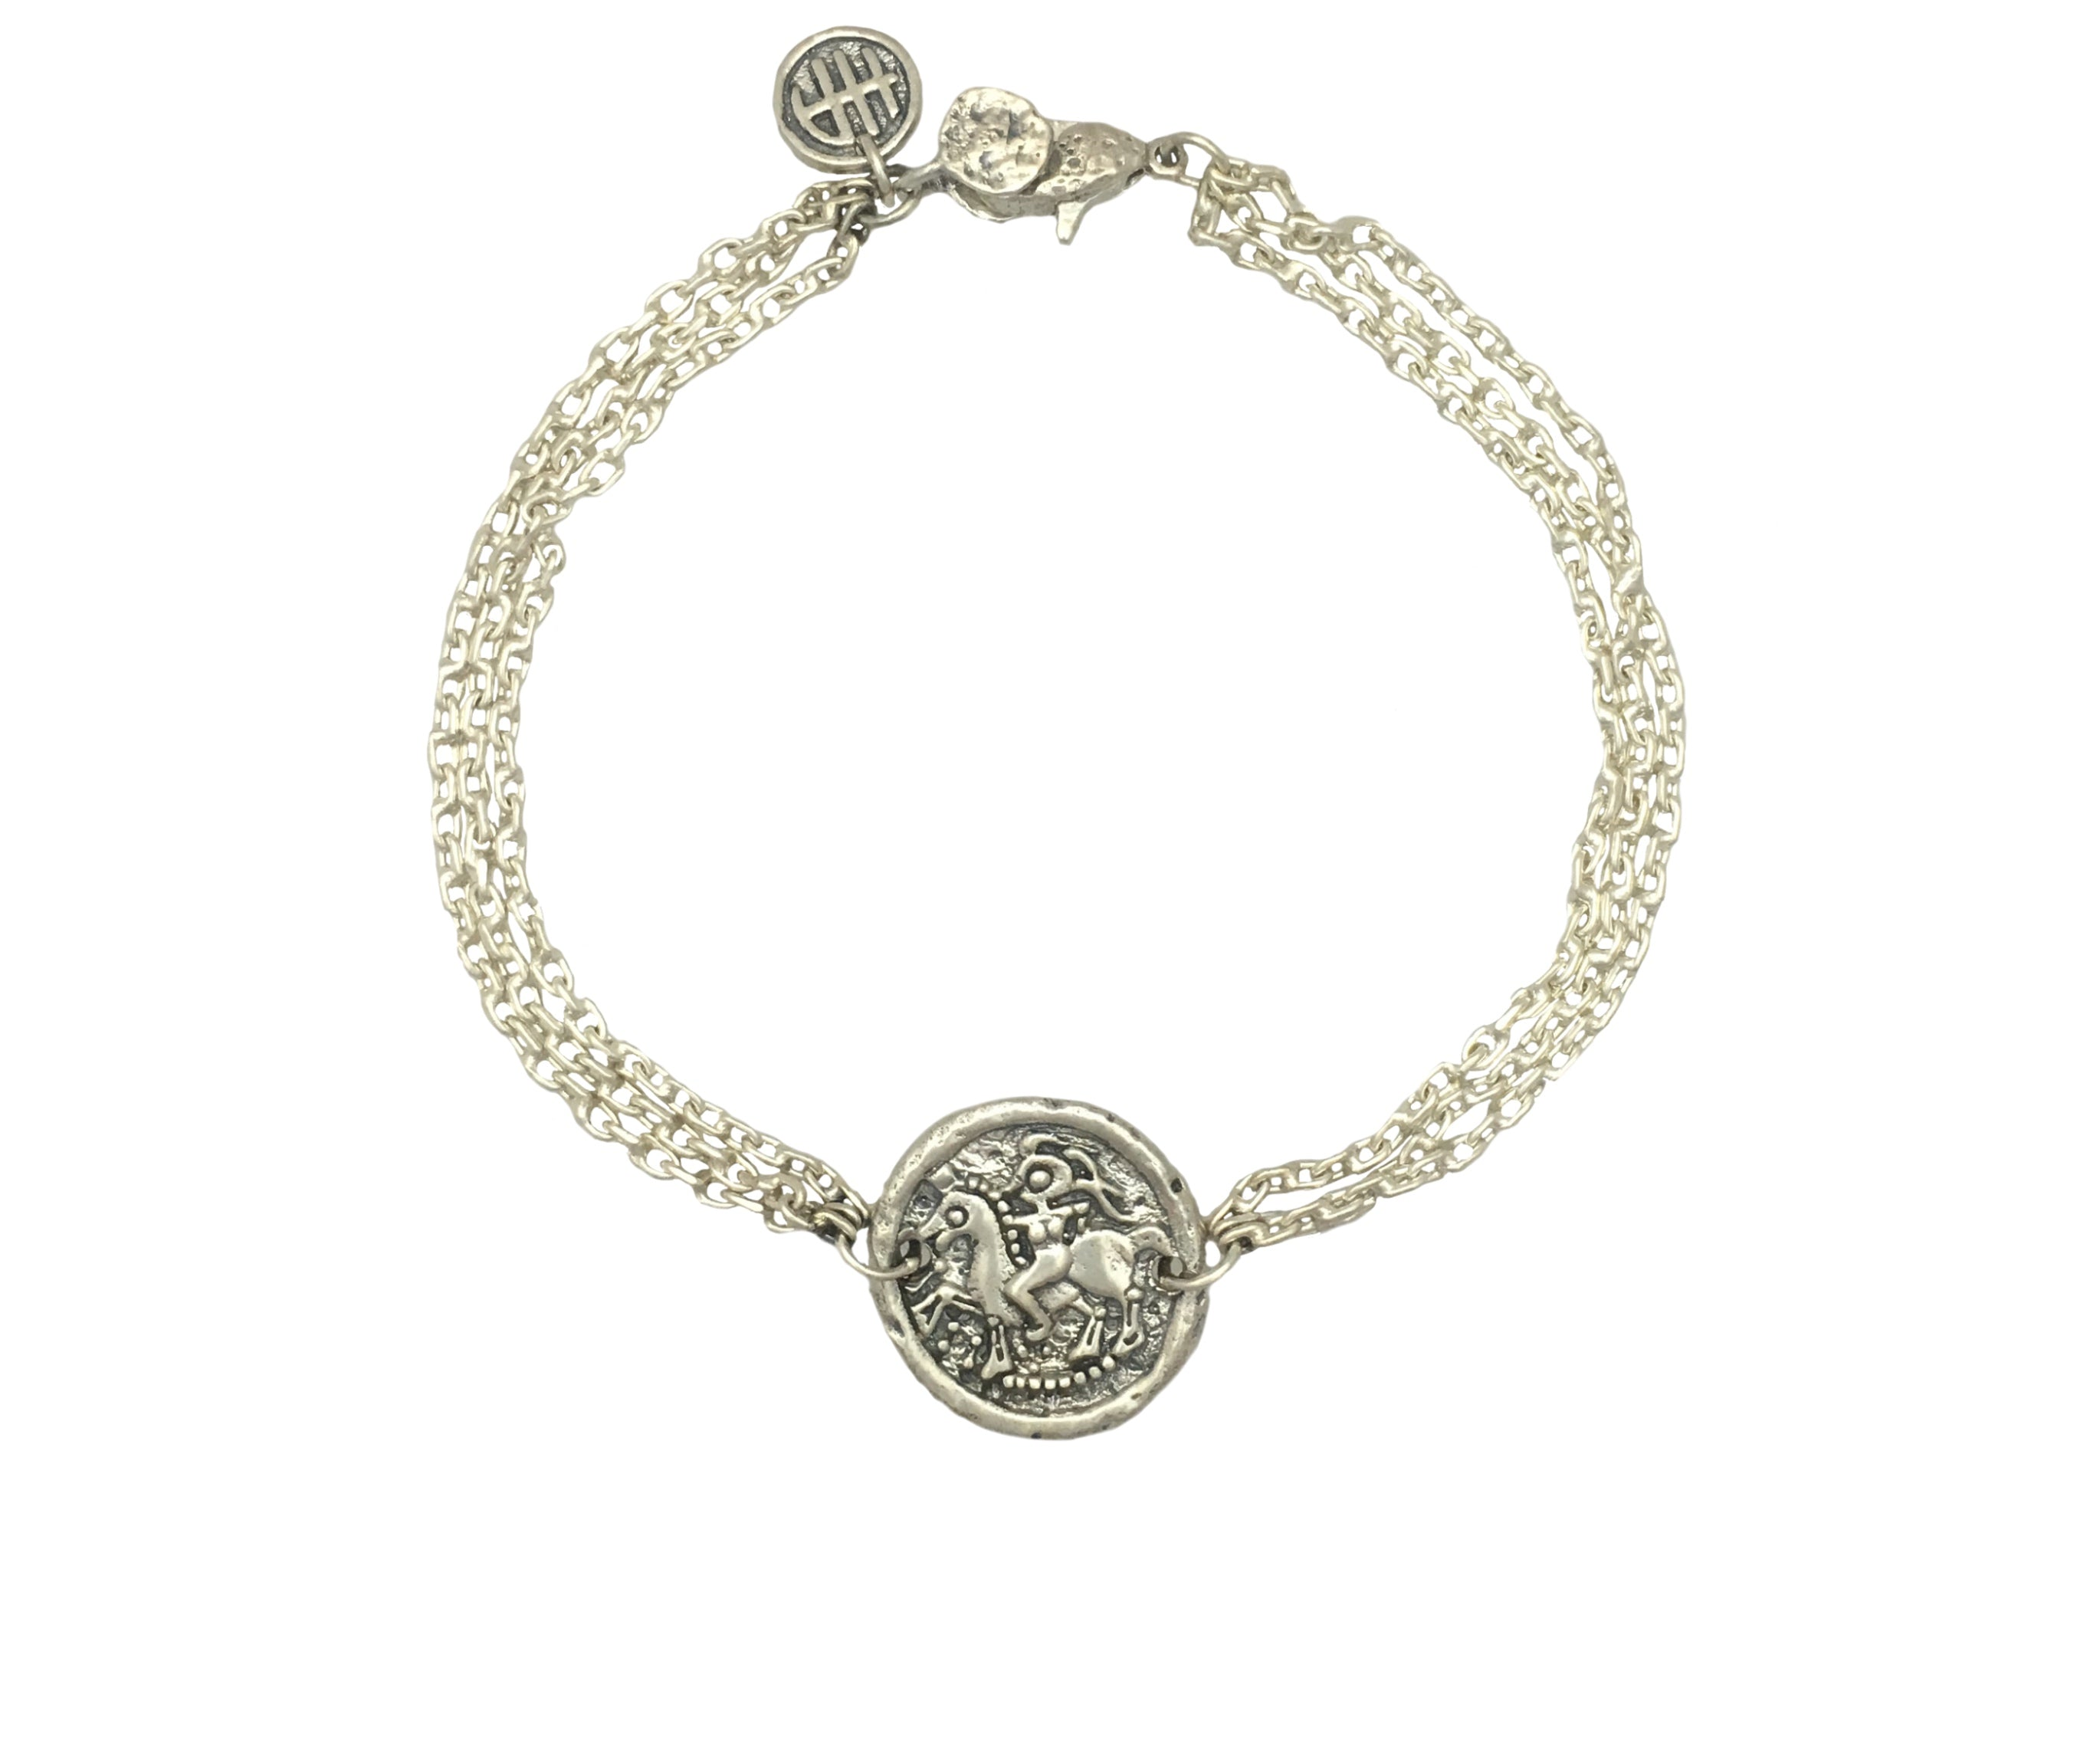 Bracelets - Girl On Horse Protection Bracelet in Sterling Silver | Handcrafted | Made in Bali